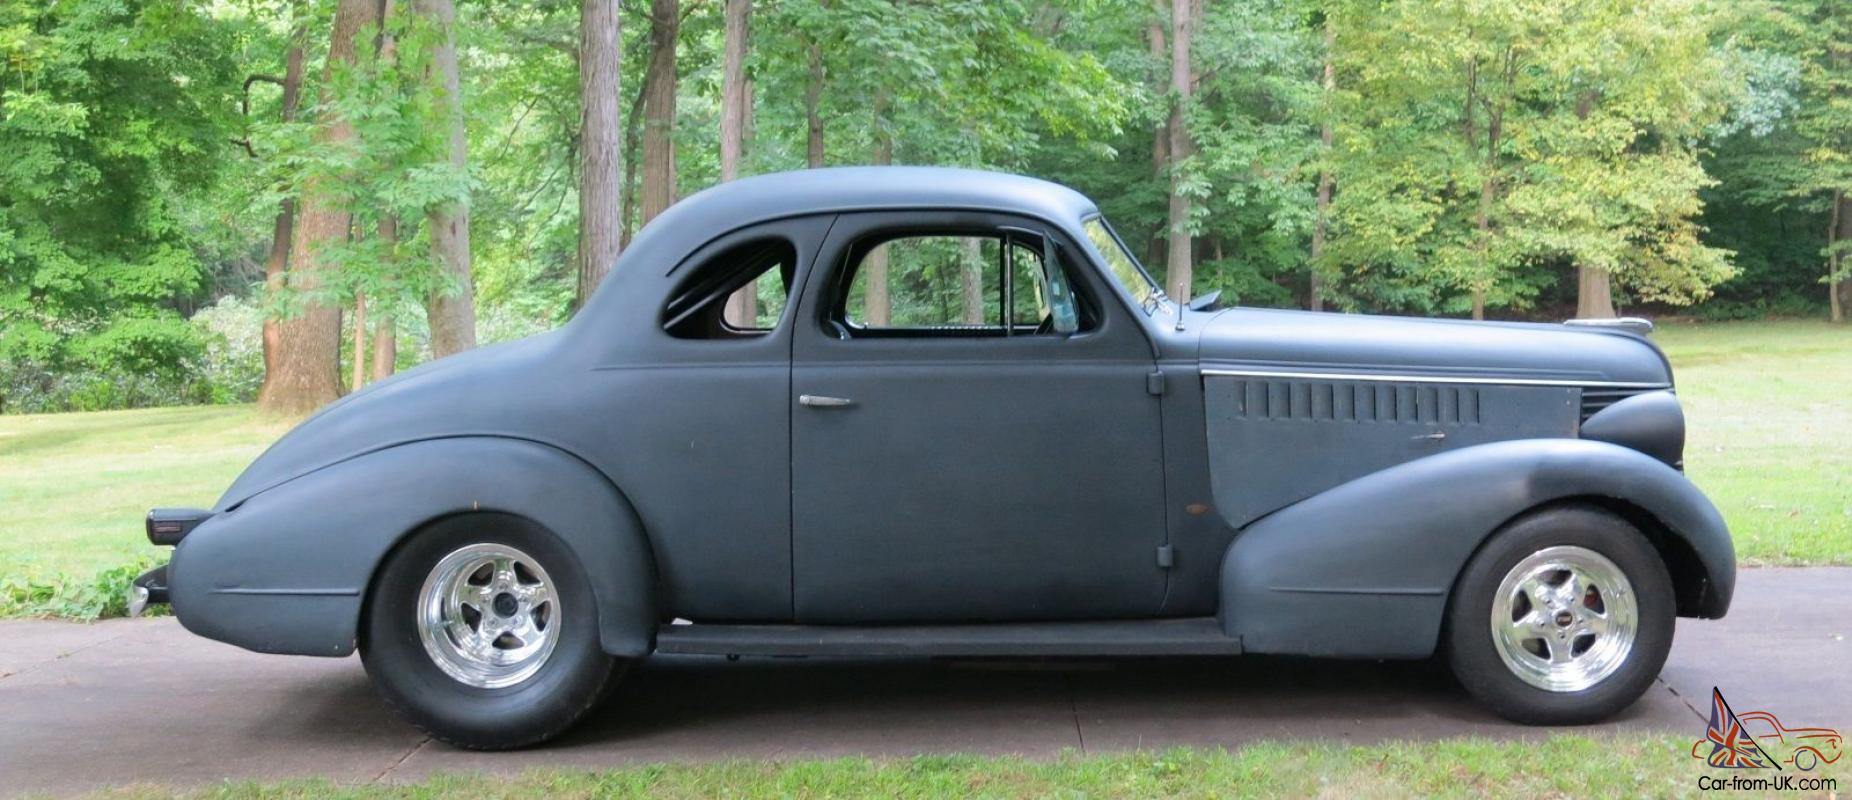 1938 Chevy Coupe For Sale Race Performance Street Cars .html | Autos